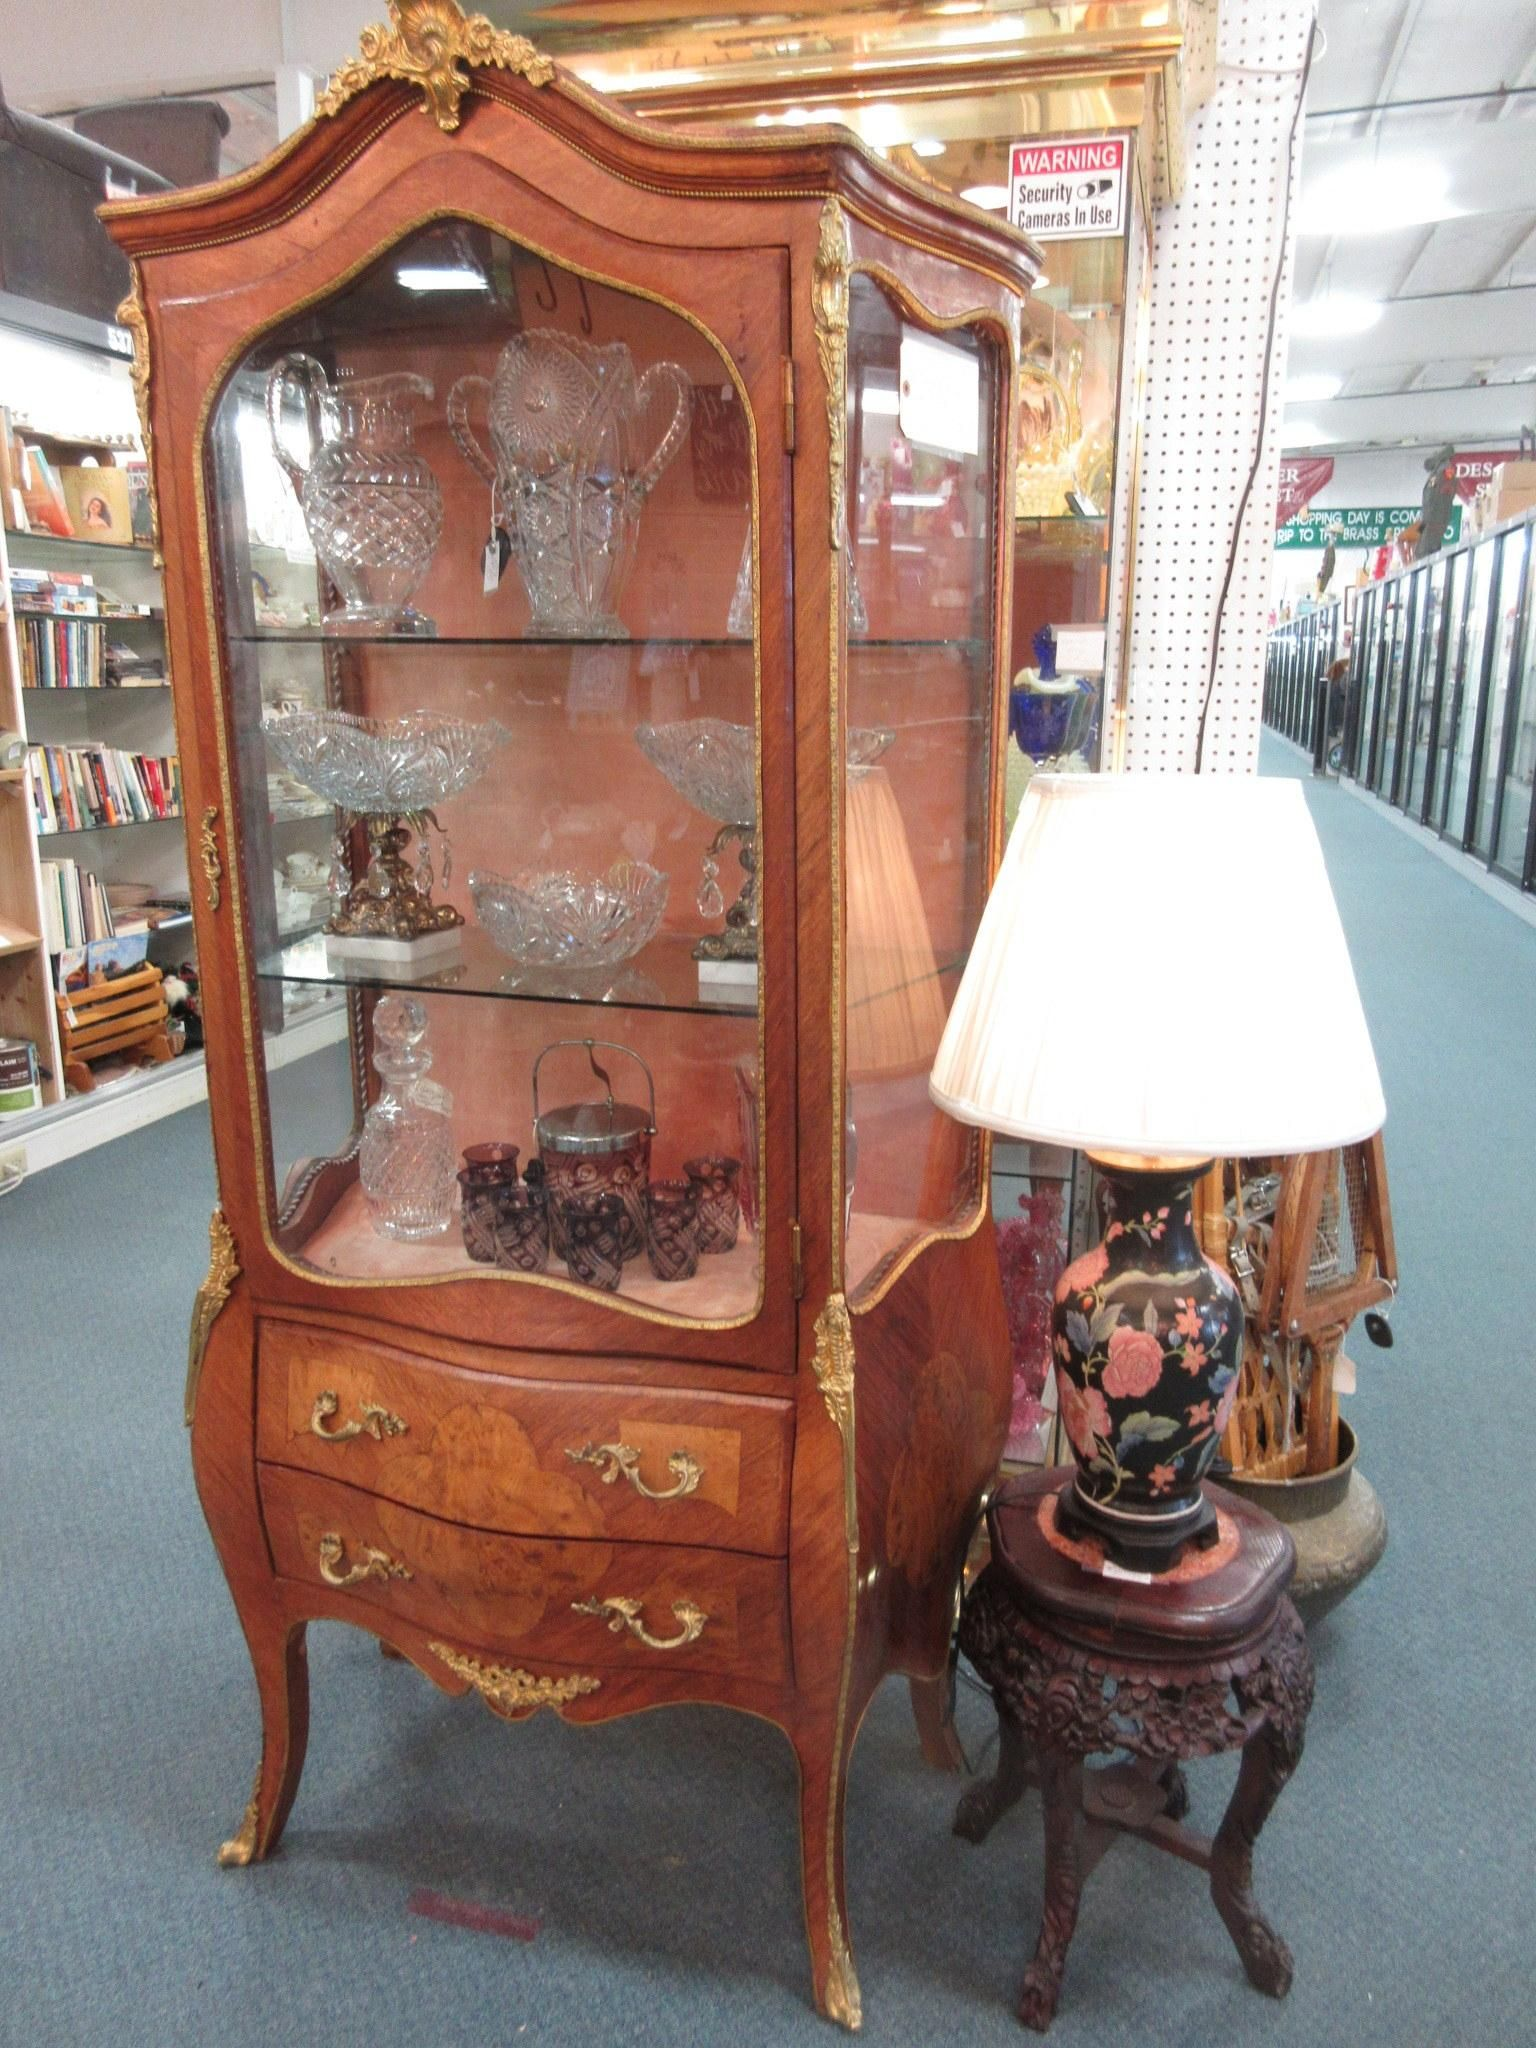 Antique early French curio cabinet. From Vendor 192. Priced at $1199.00. ~  The Brass Armadillo Antique Mall in Denver, CO. 303-403-1677 ~ - Antique Early French Curio Cabinet. From Vendor 192. Priced At